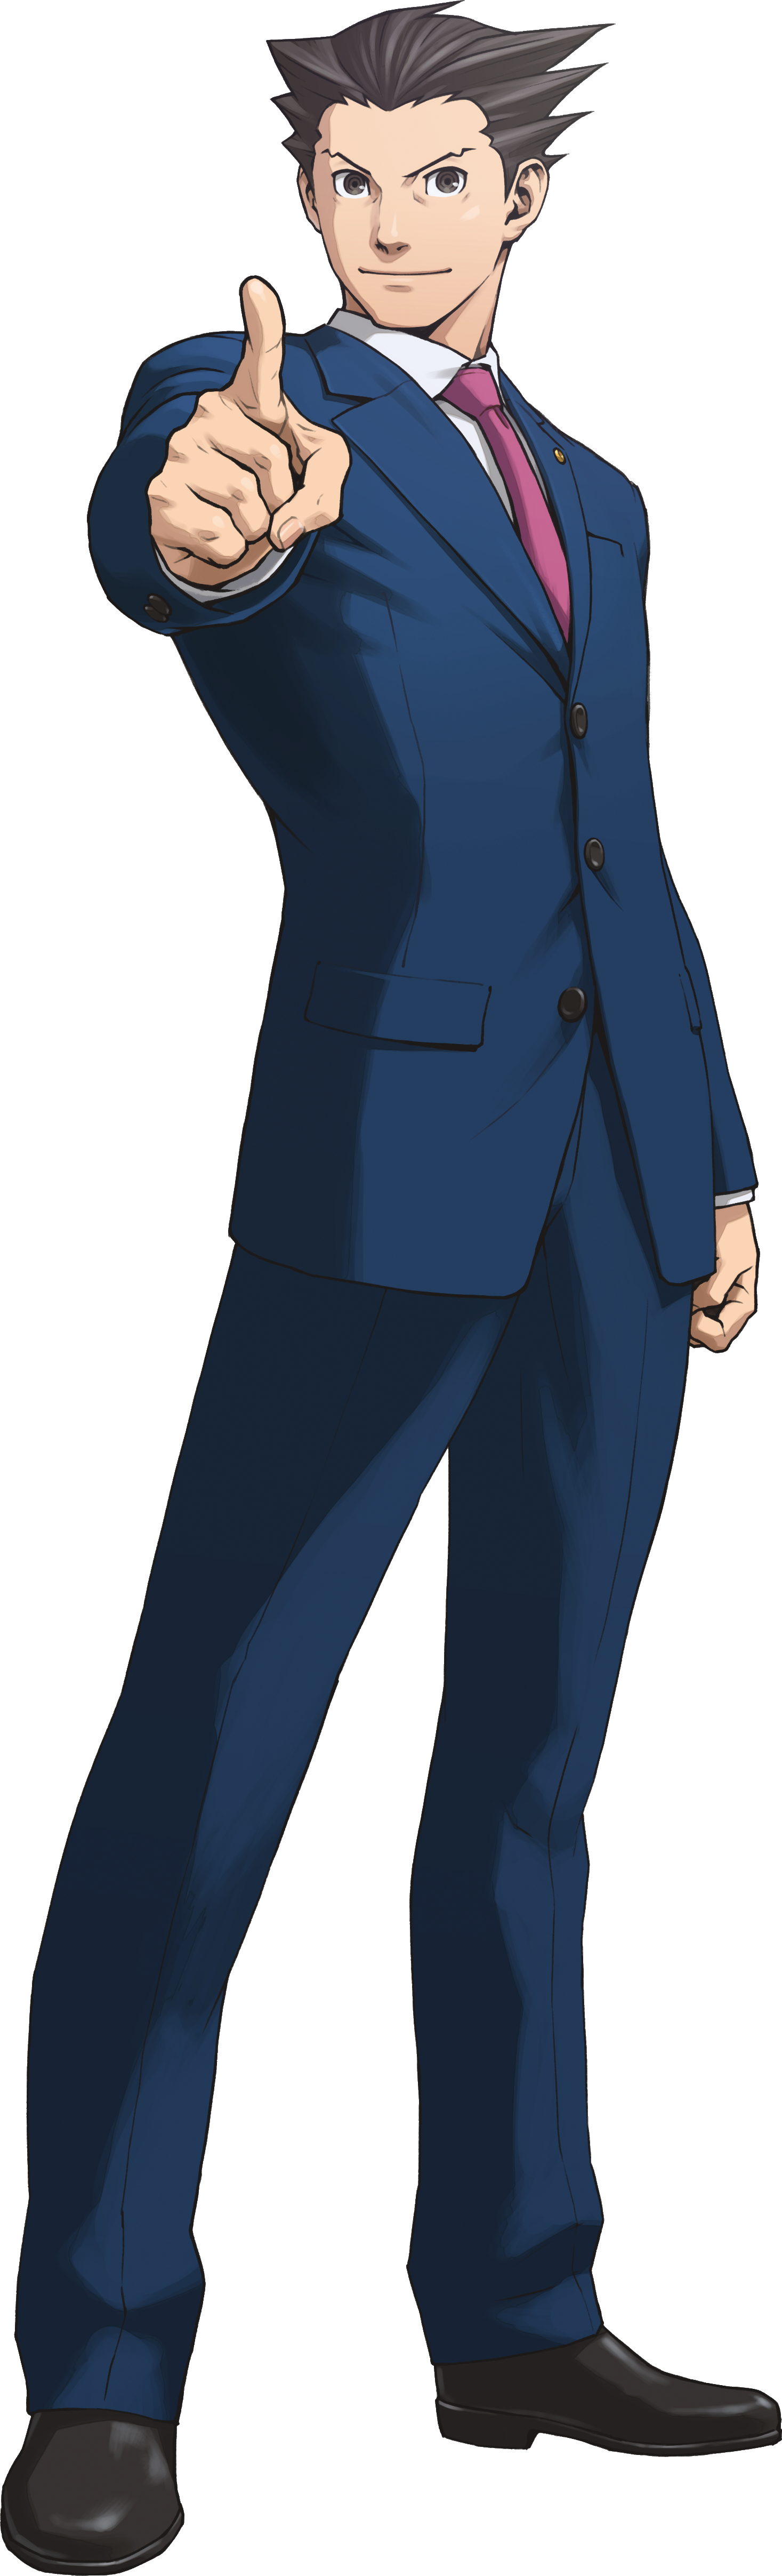 Image - Phoenix Wright Trilogy Art.png | Ace Attorney Wiki | FANDOM powered  by Wikia - Ace Attorney HD PNG